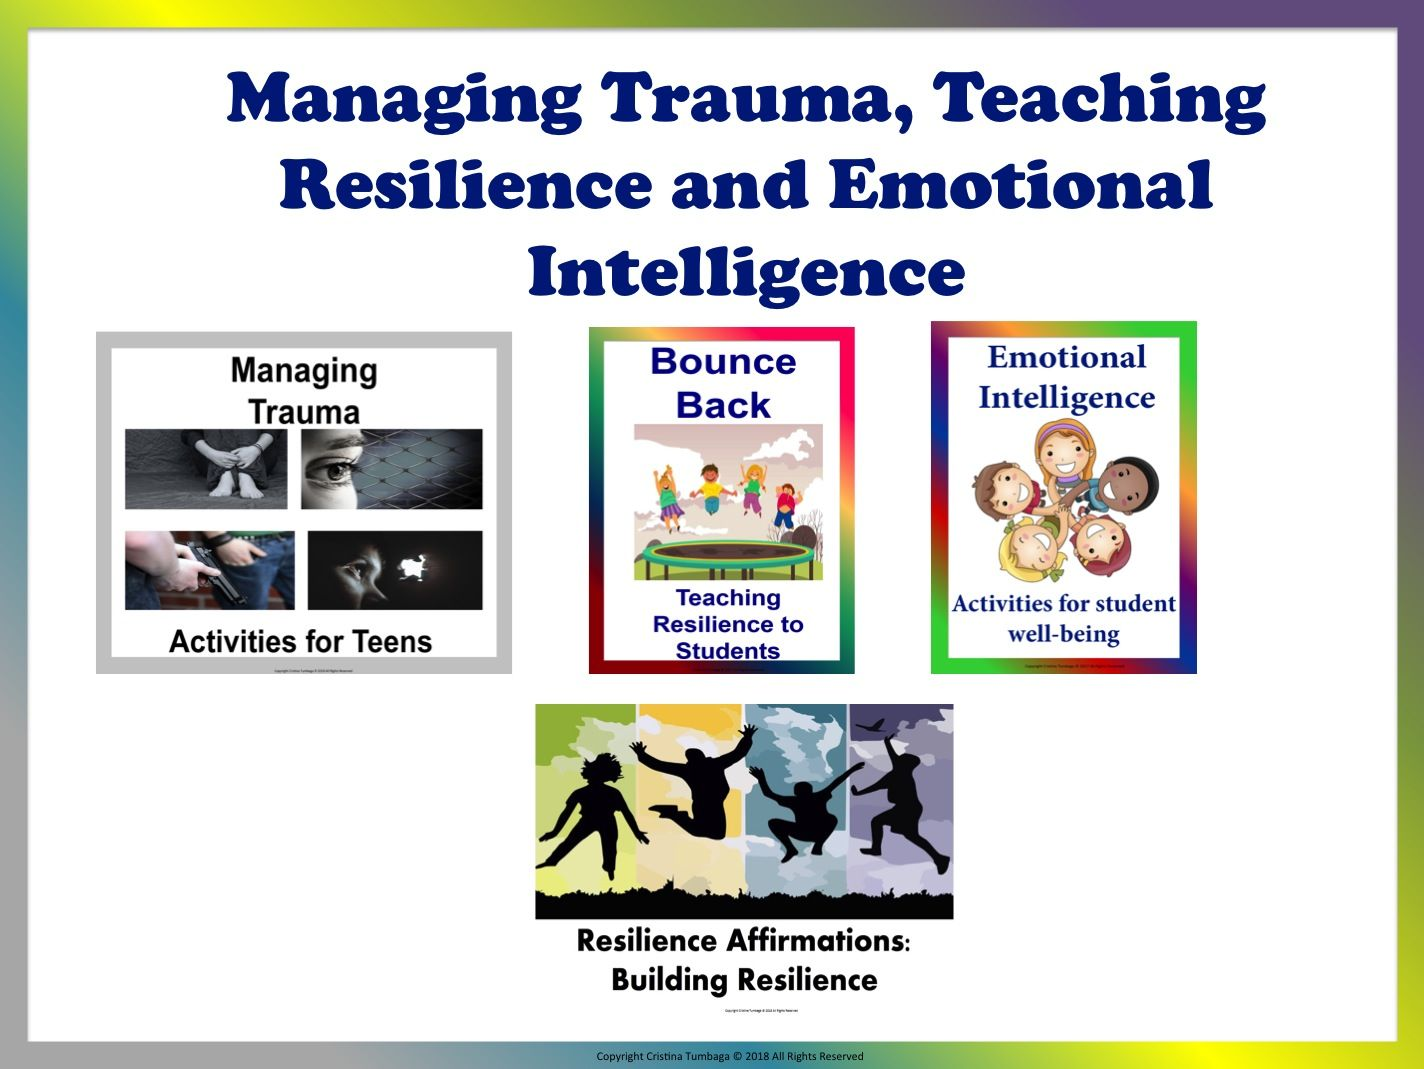 Managing Trauma, Teaching Resilience, & Emotional Intelligence